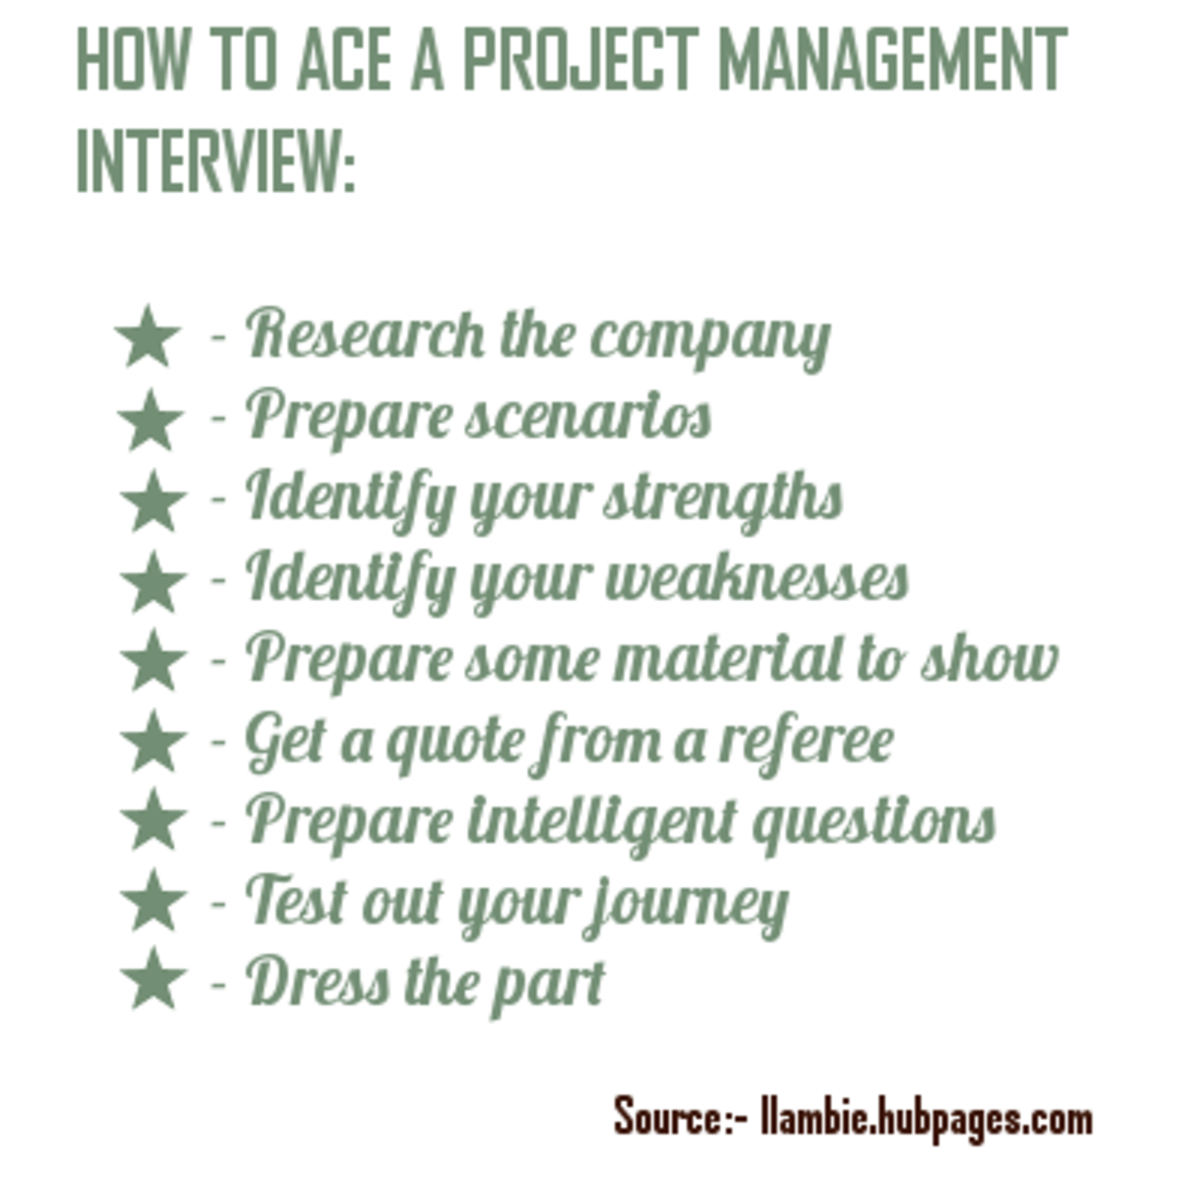 how to ace a project management interview hubpages